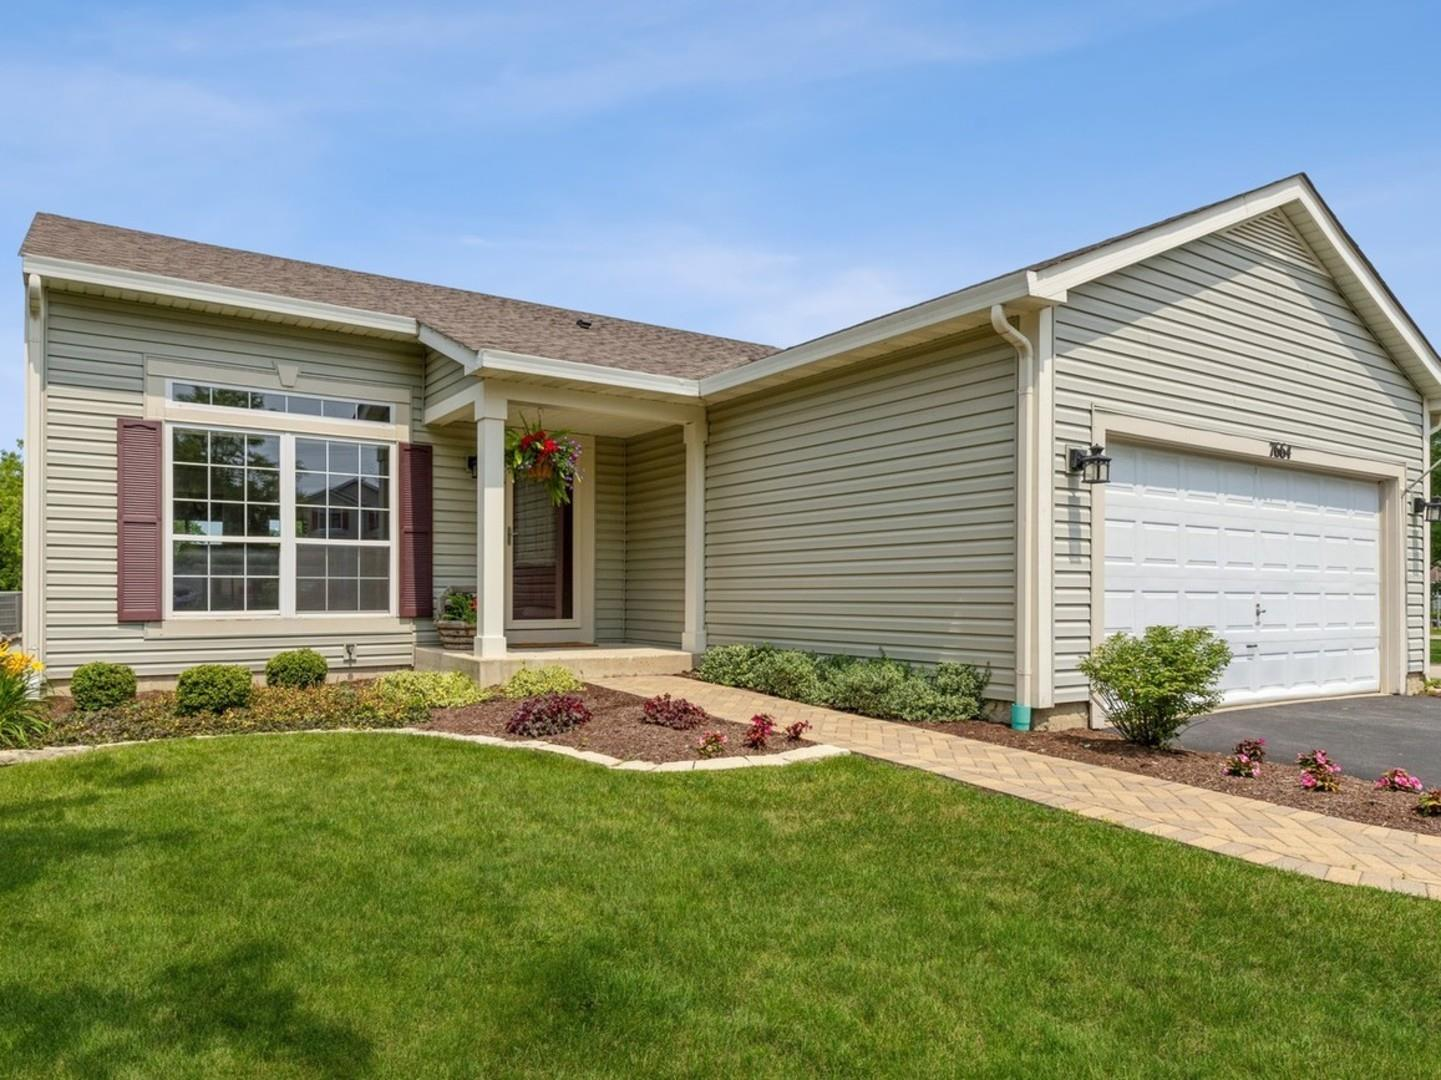 7664 GAMAY Court, Gurnee, IL 60031 - #: 11164514